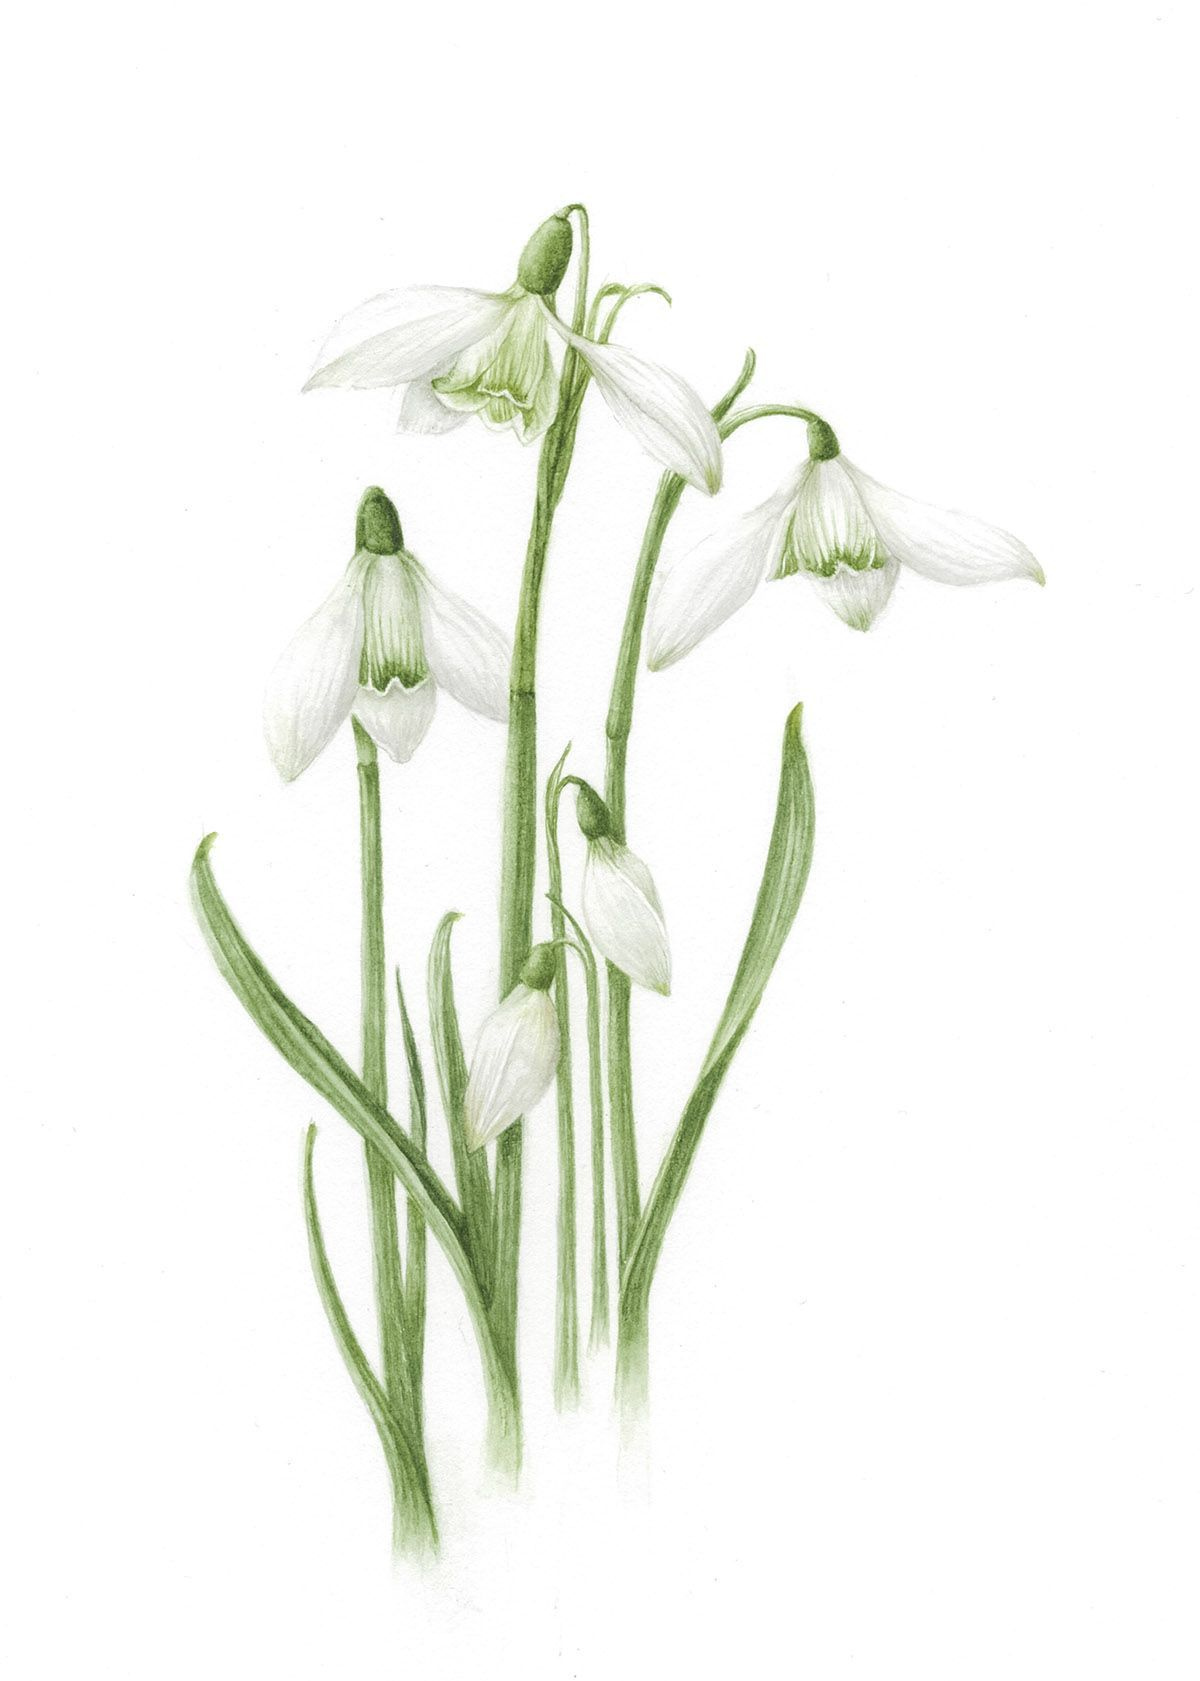 Snowdrop Flower Botanical Drawing Google Search Botanical Drawings Botanical Flowers